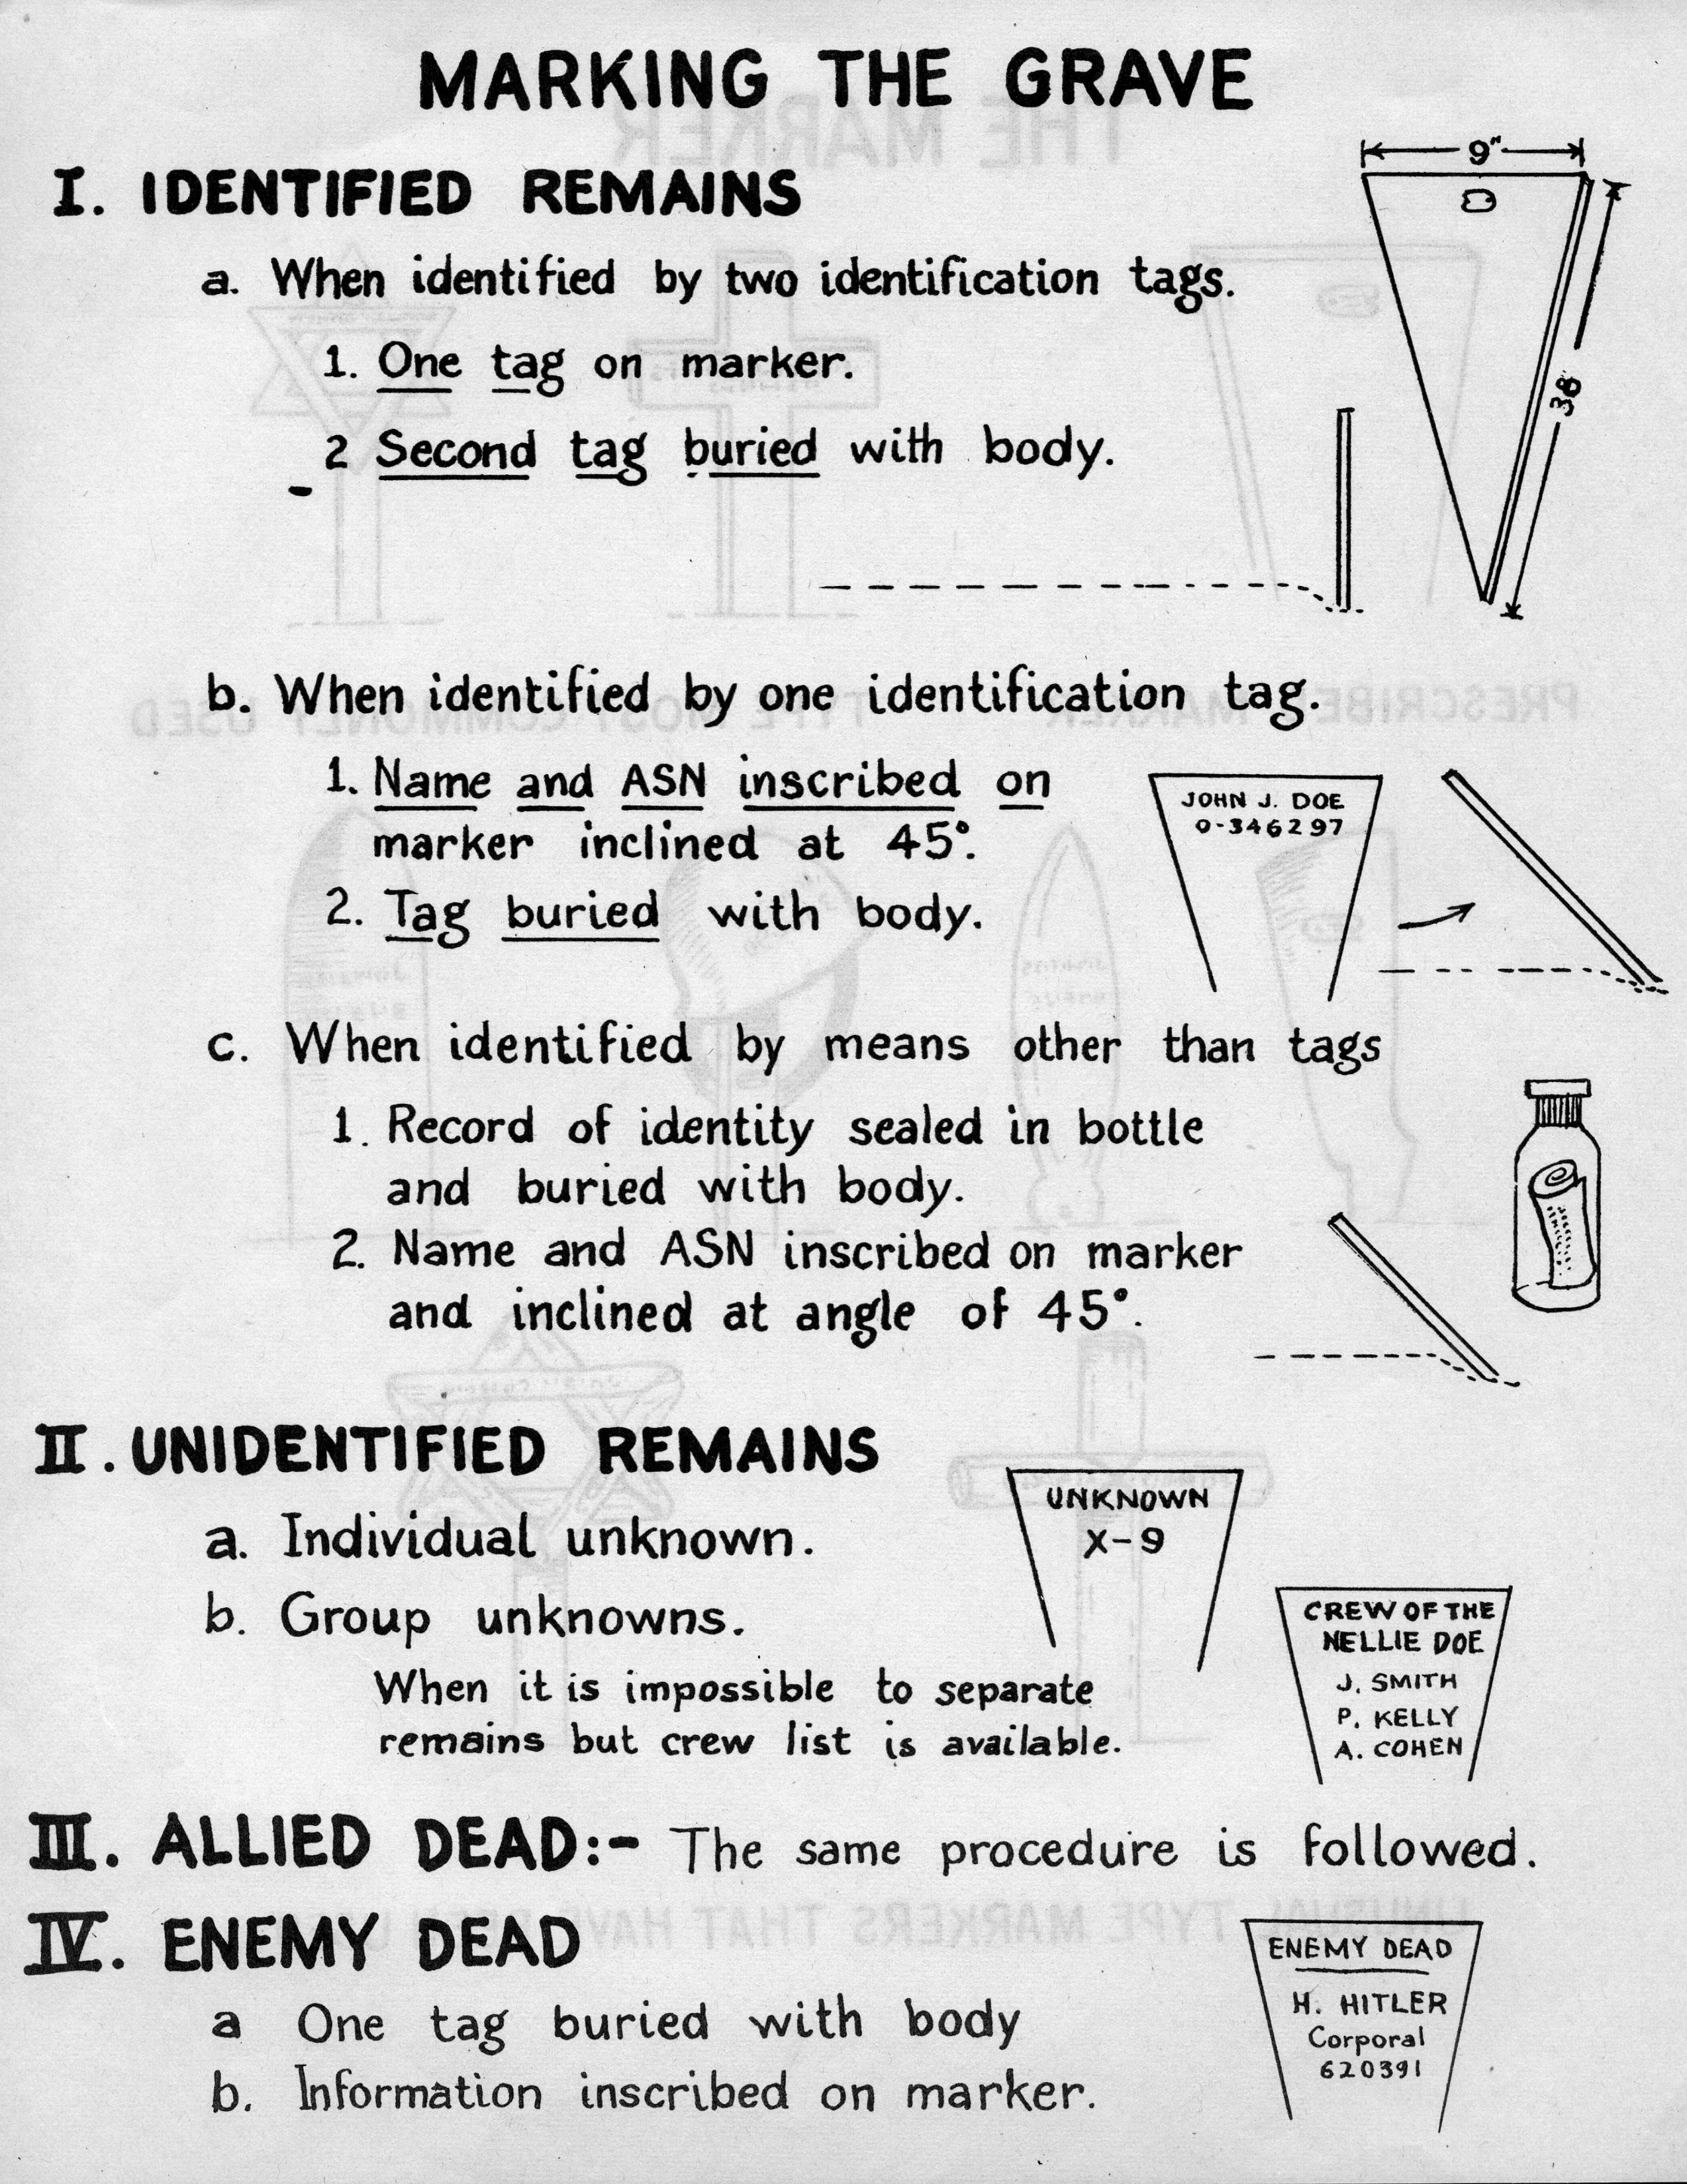 A worksheet instructing chaplains on how to mark military graves